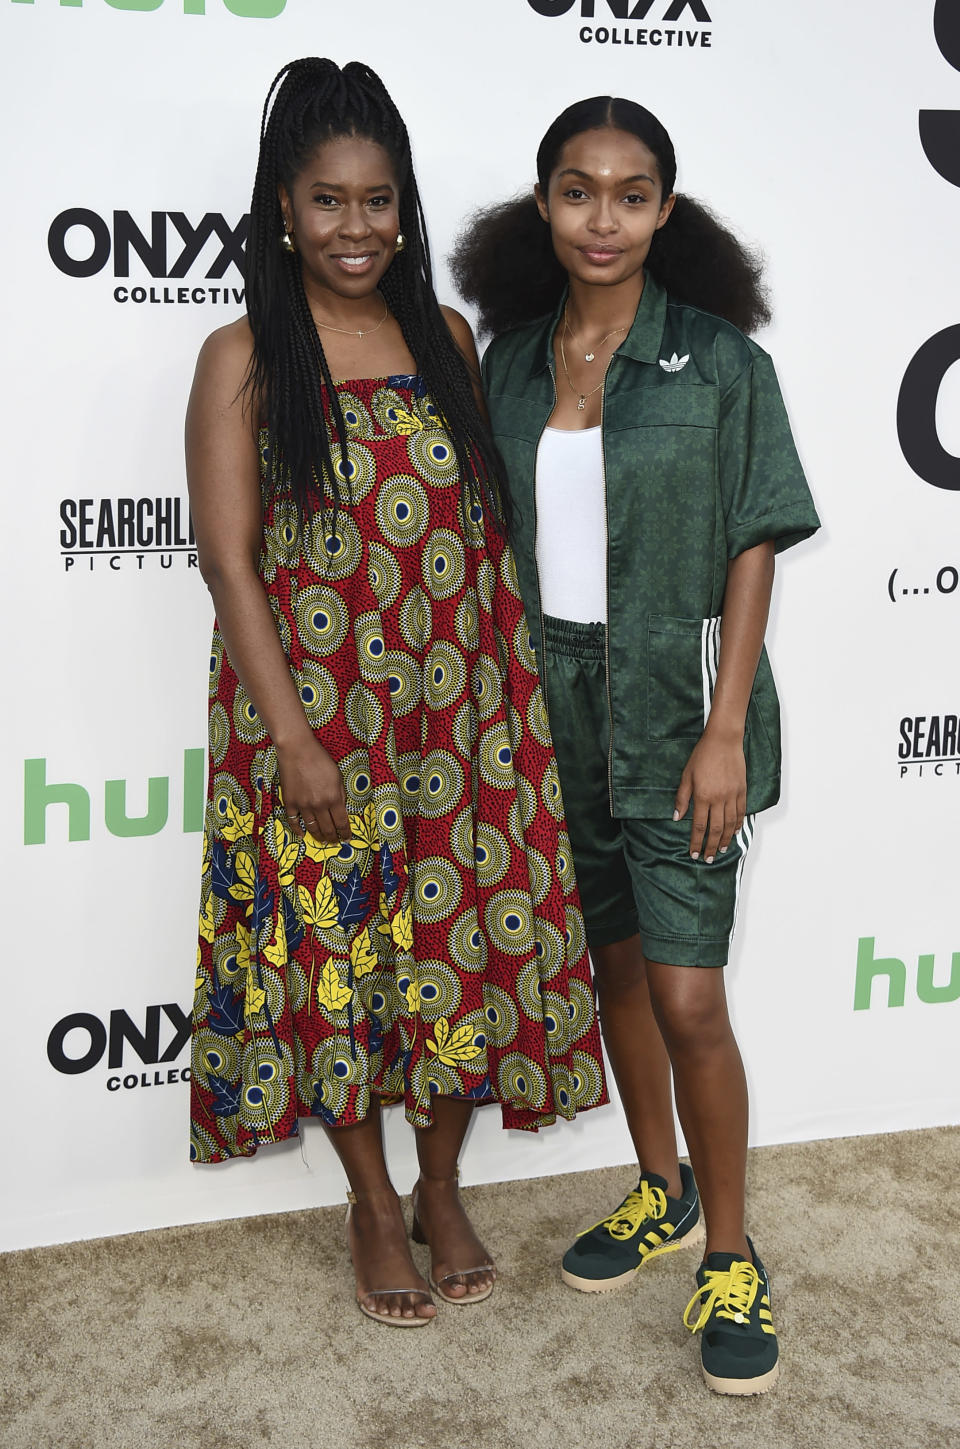 """Tara Duncan and Yara Shahidi arrive at the Los Angeles premiere of """"Summer of Soul"""" at The Greek Theatre on Friday, July 9, 2021. (Photo by Jordan Strauss/Invision/AP) - Credit: Jordan Strauss/Invision/AP"""